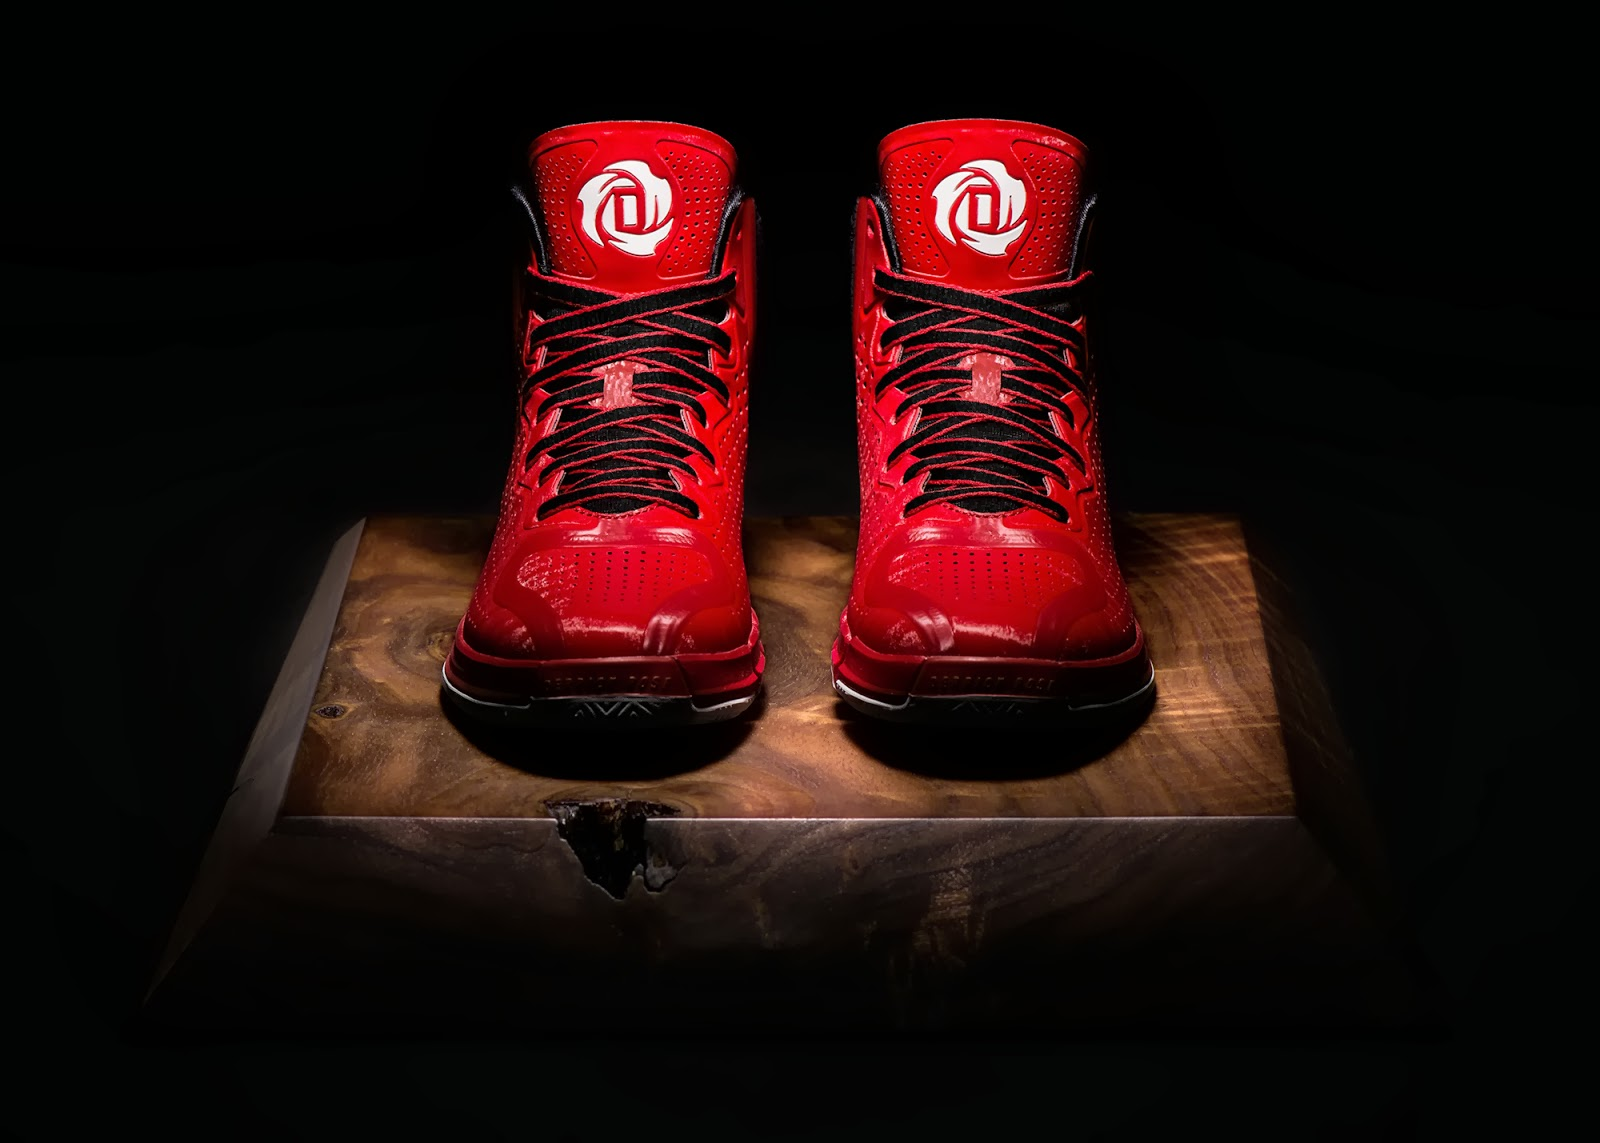 0fb3deadc76f THE SNEAKER ADDICT  adidas Derrick Rose 4